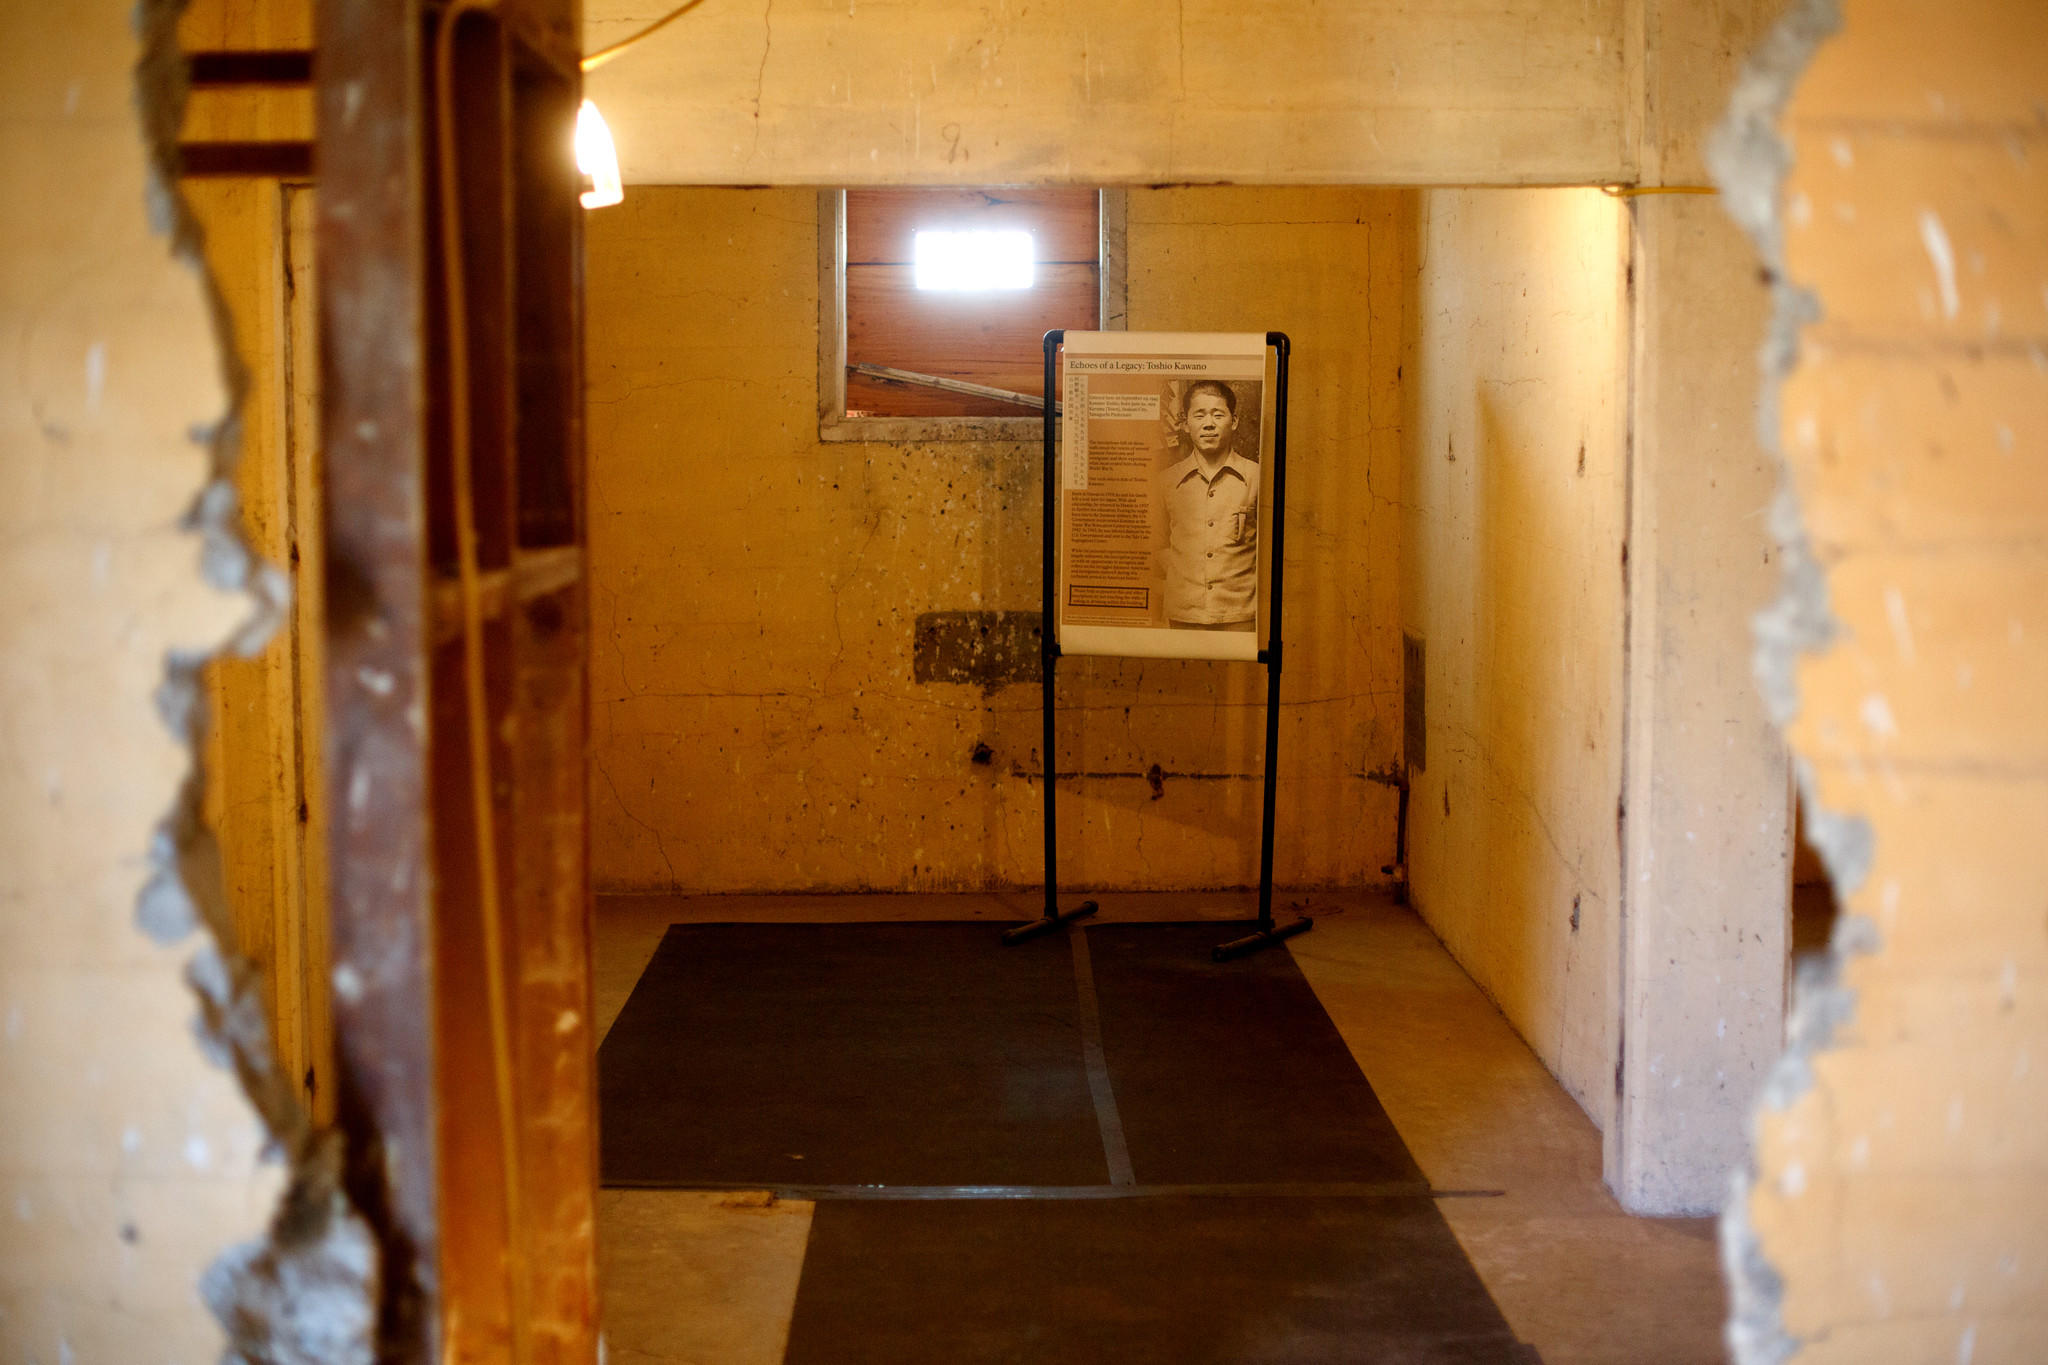 Toshio Kawano is shown in a photograph in the holding cell where he left inscriptions inside the high security jail at the Tule Lake Segregation Center.